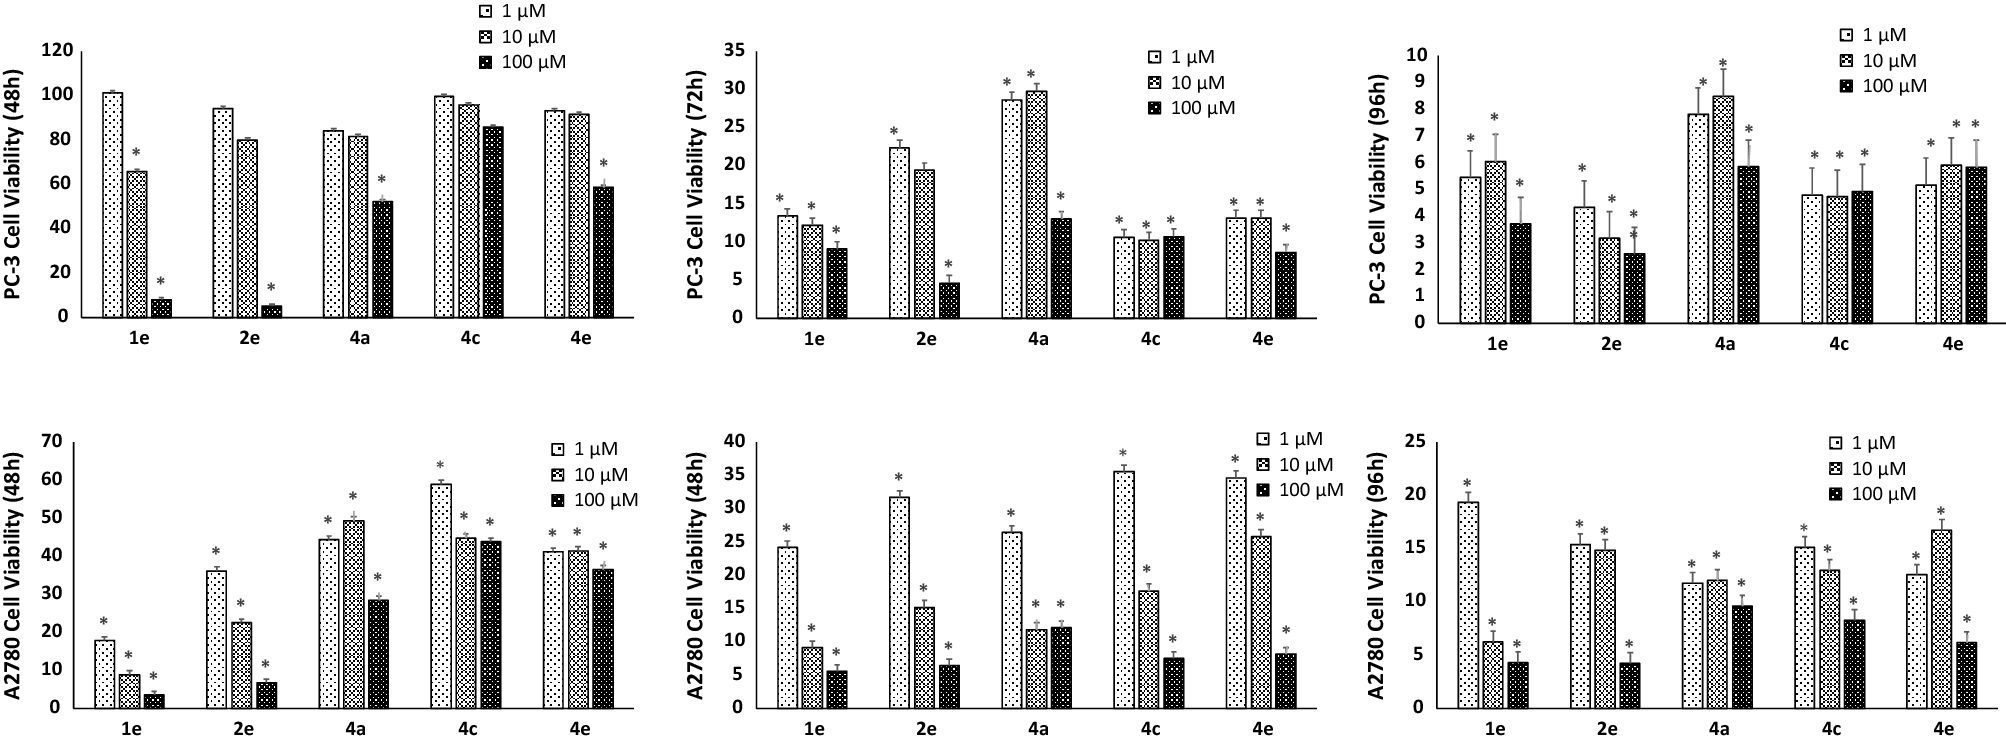 Cytotoxic effects of coumarin substituted benzimidazolium